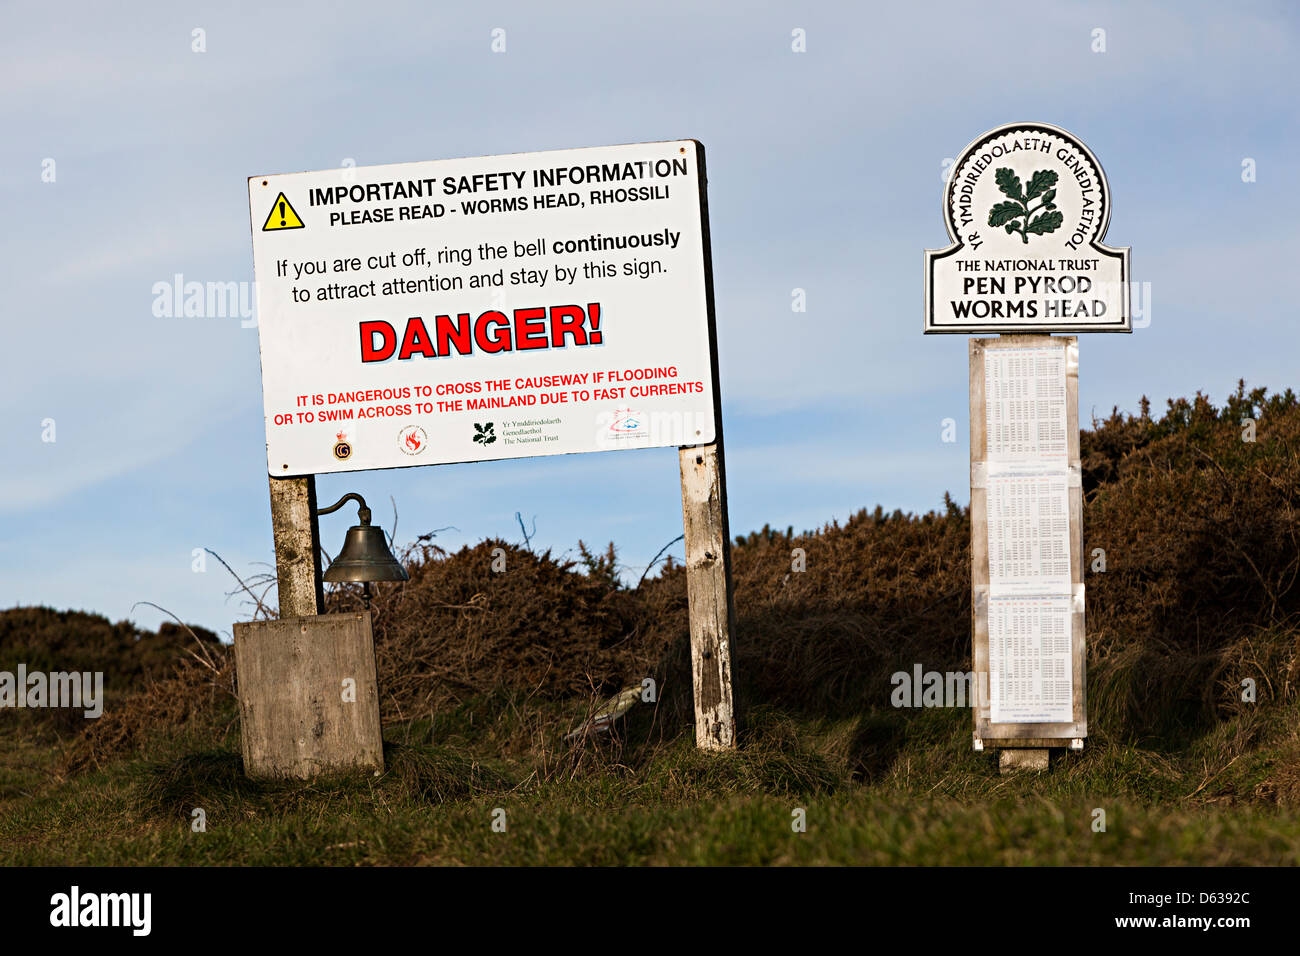 Danger sign for being cut off at high tide on Worm's Head, Rhossili, Gower, Wales, UK - Stock Image